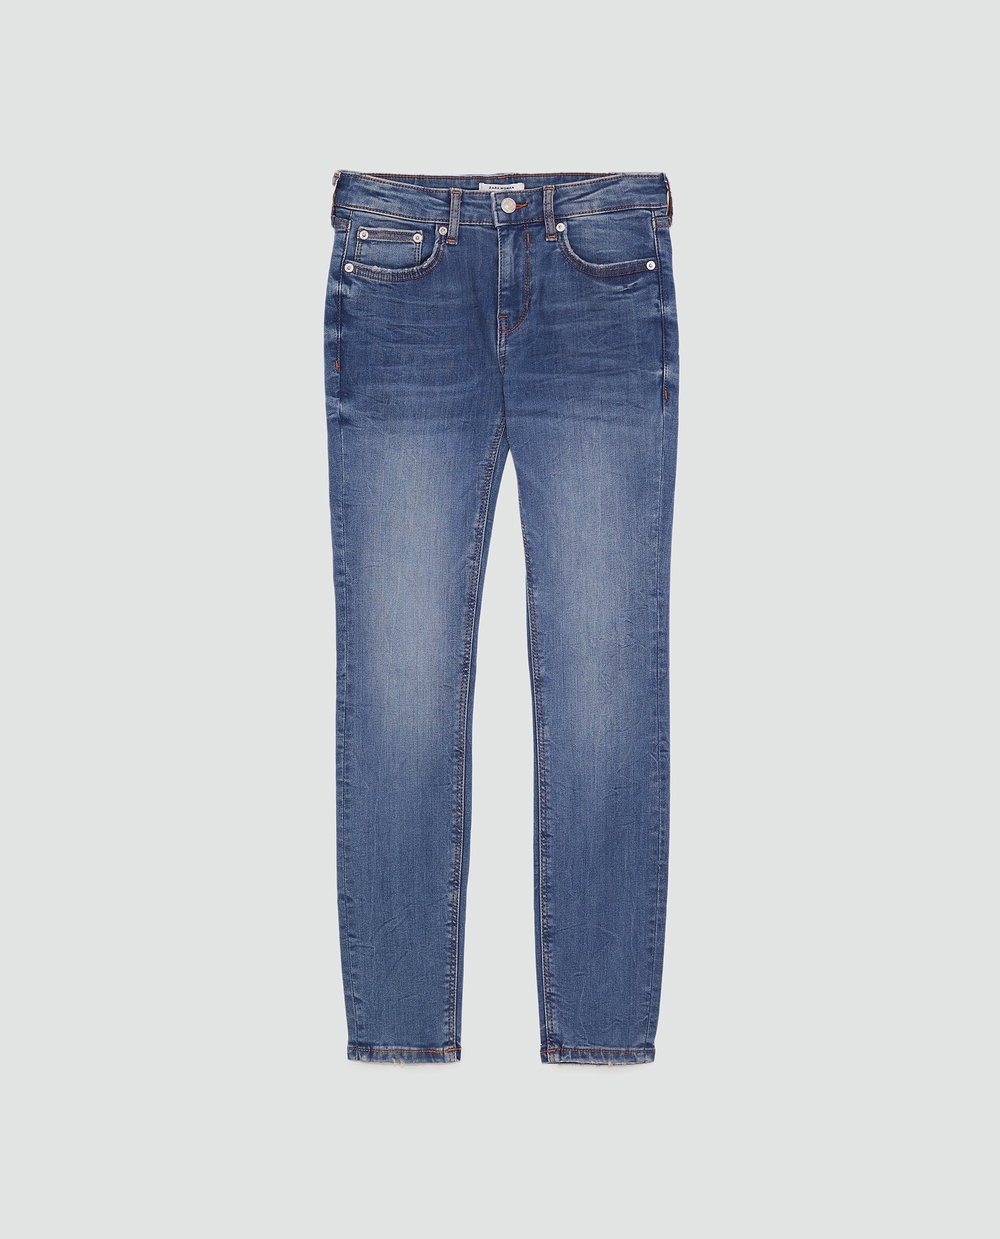 I now own three pairs of   this exact denim  . I wish they were high-waisted, but they're still great.